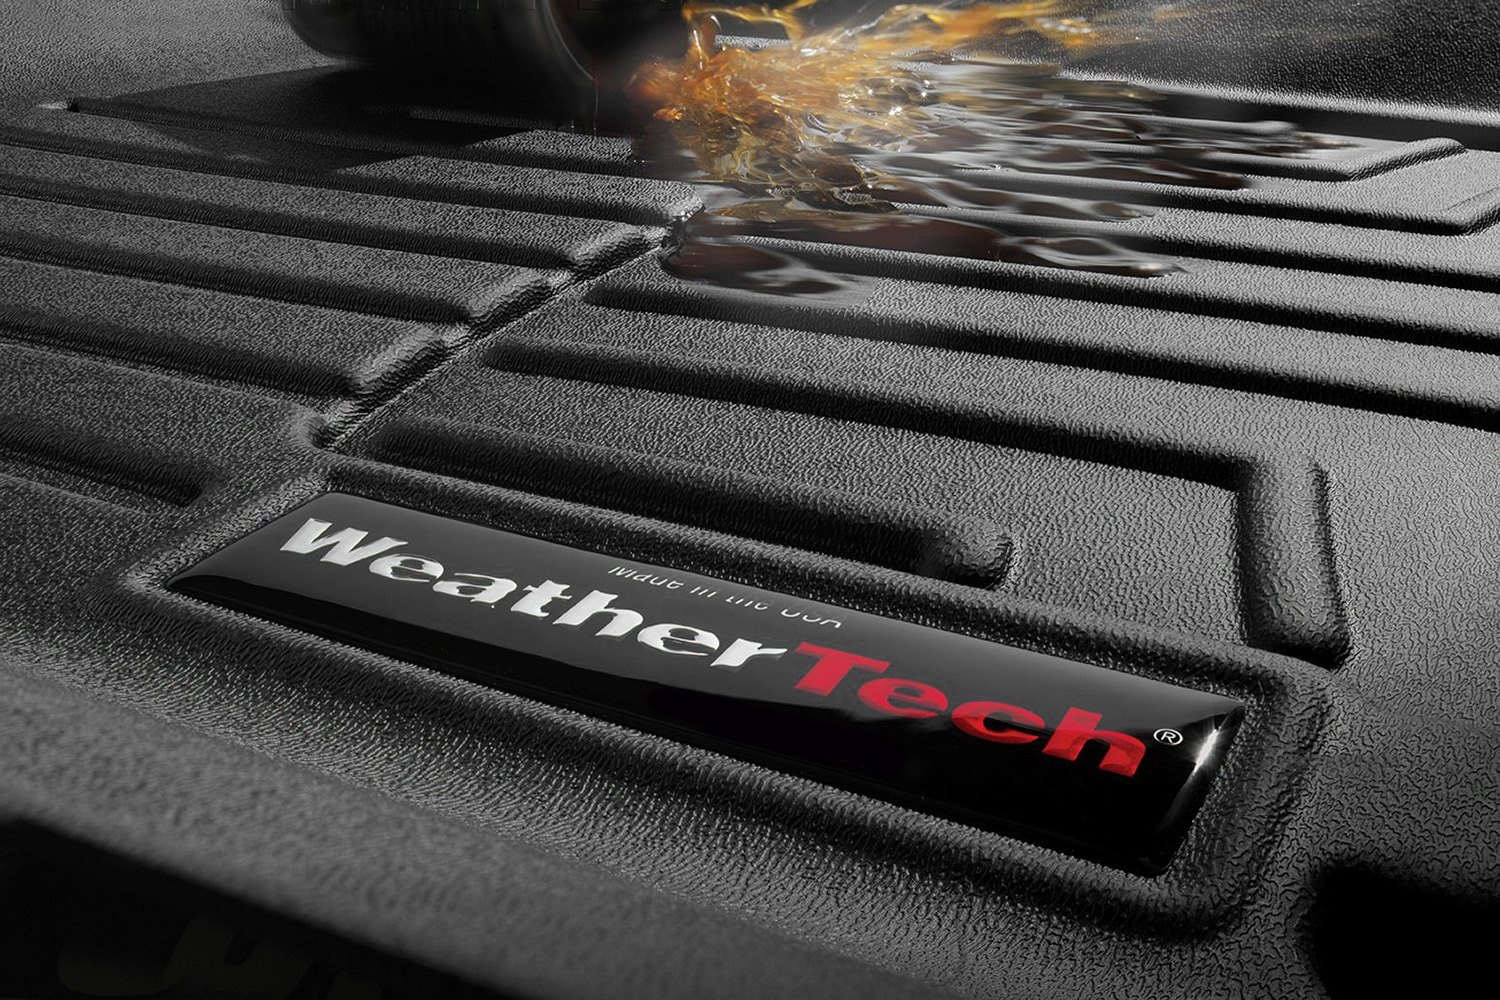 Weathertech floor mats promo -  Weathertech Digitalfit Molded Floor Mats Close Up